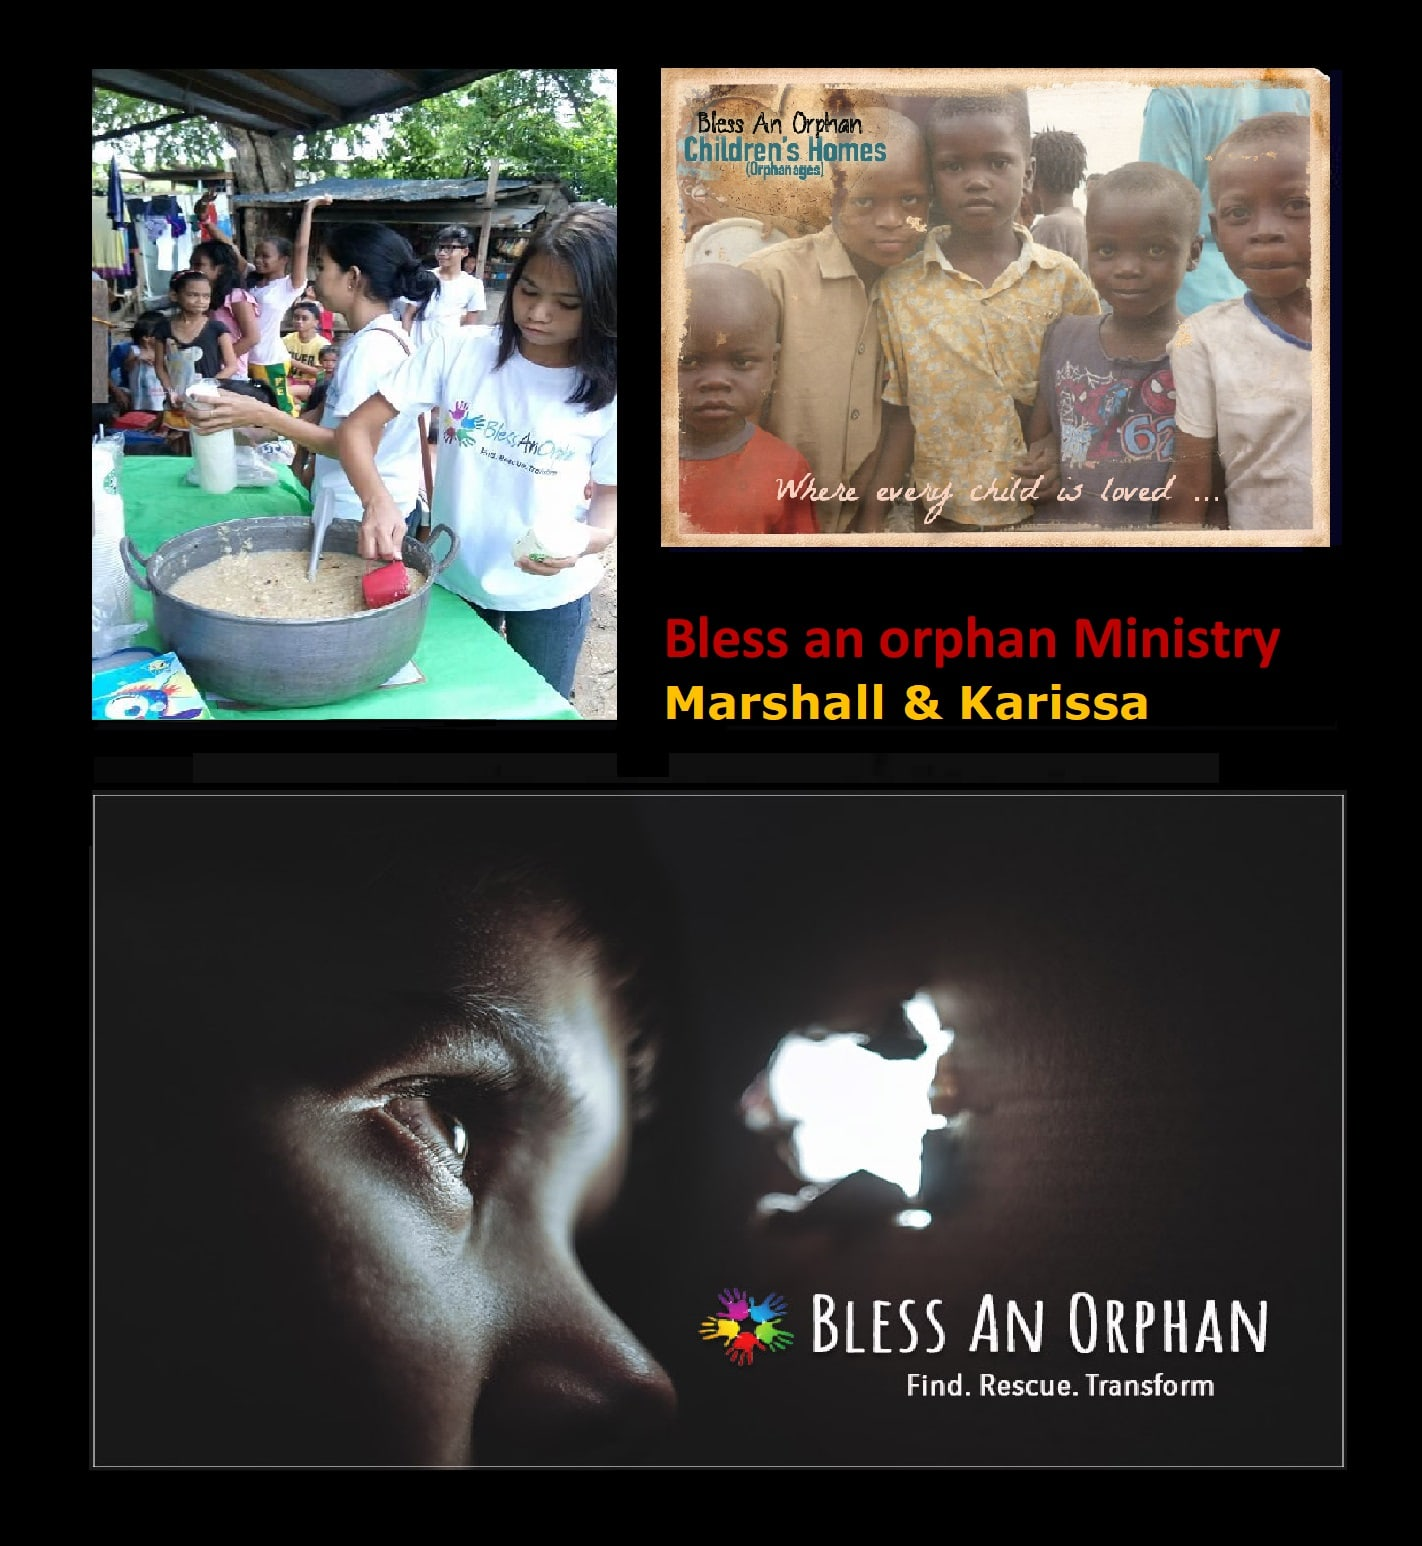 Bless an orphan Ministry